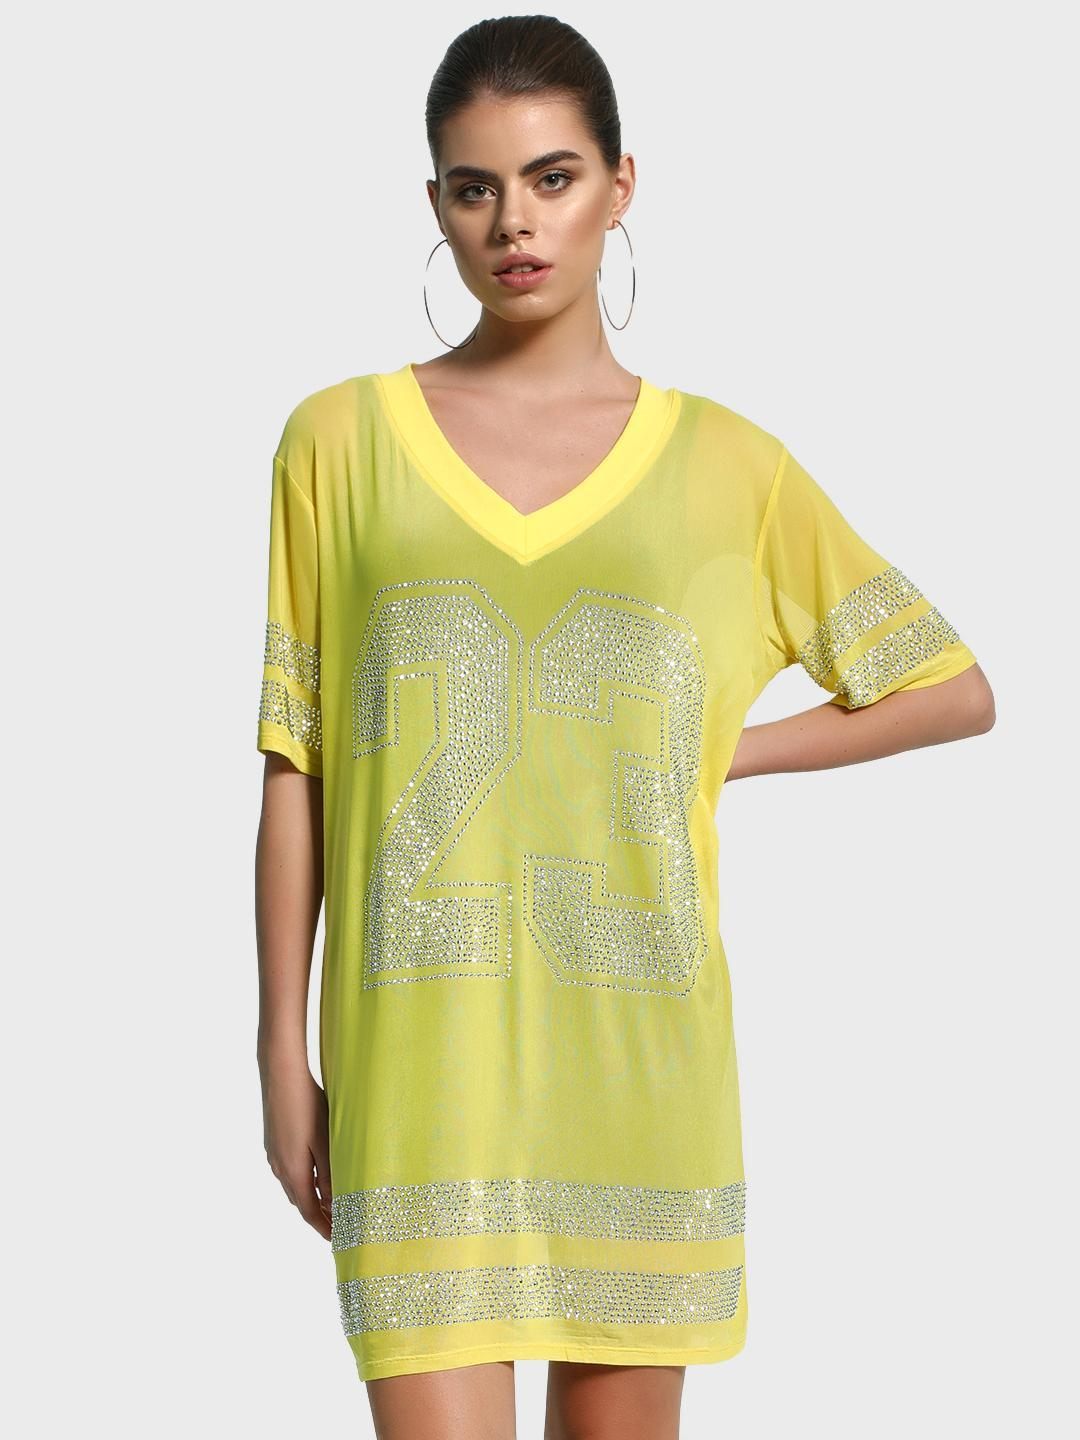 KOOVS Yellow Stud Embellished Mesh T-Shirt Dress 1